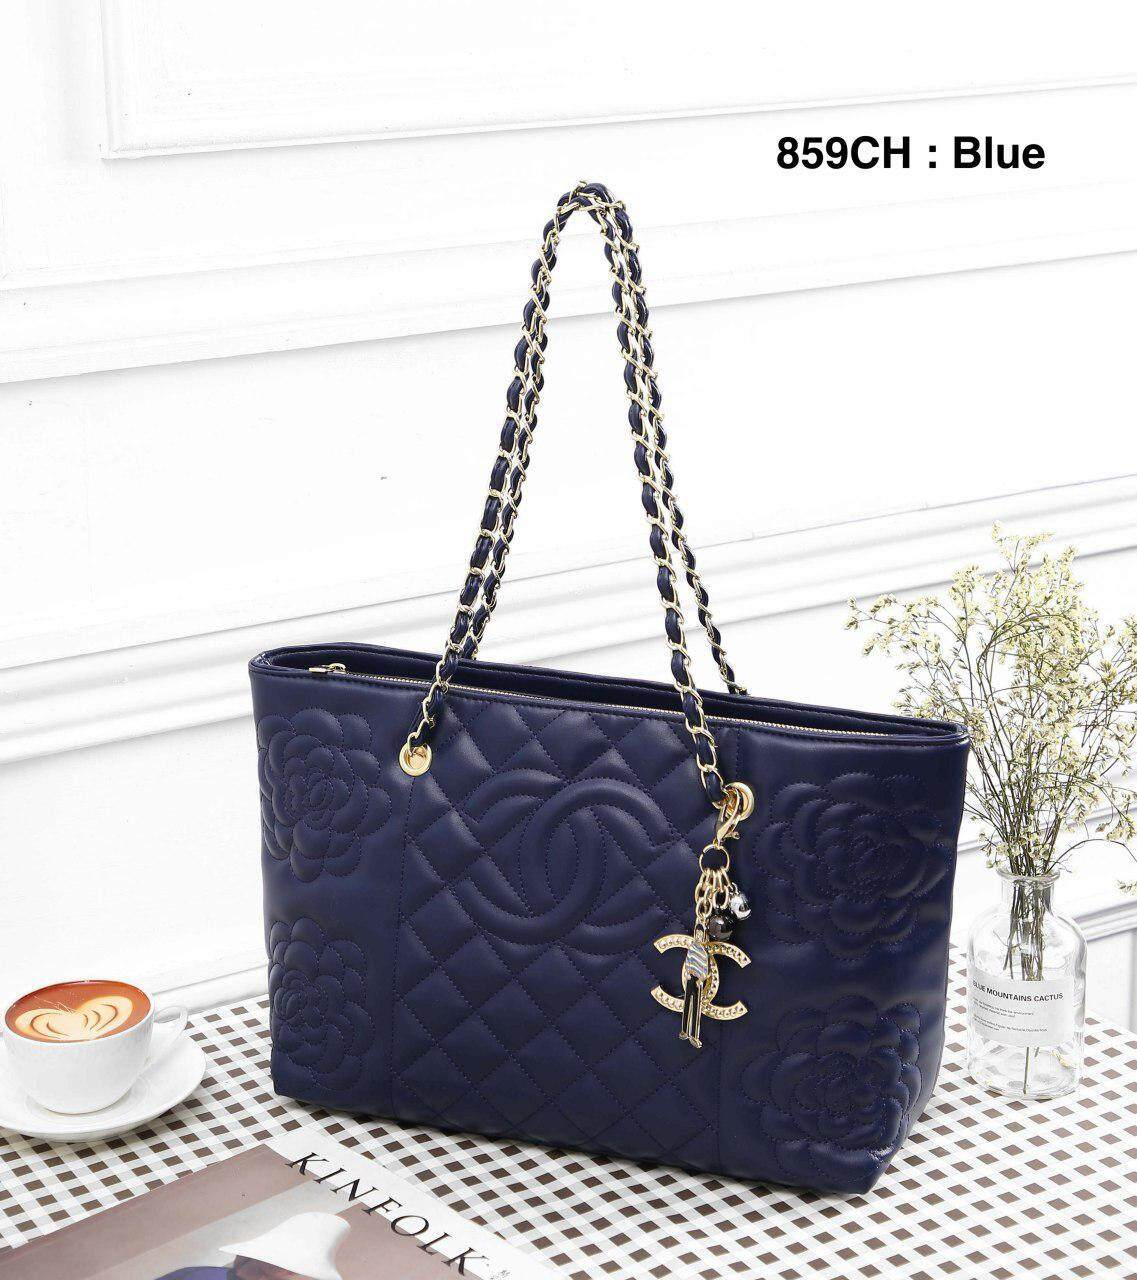 6a4d2e694a5d Chanel Bags and Travel price in Malaysia - Best Chanel Bags and ...